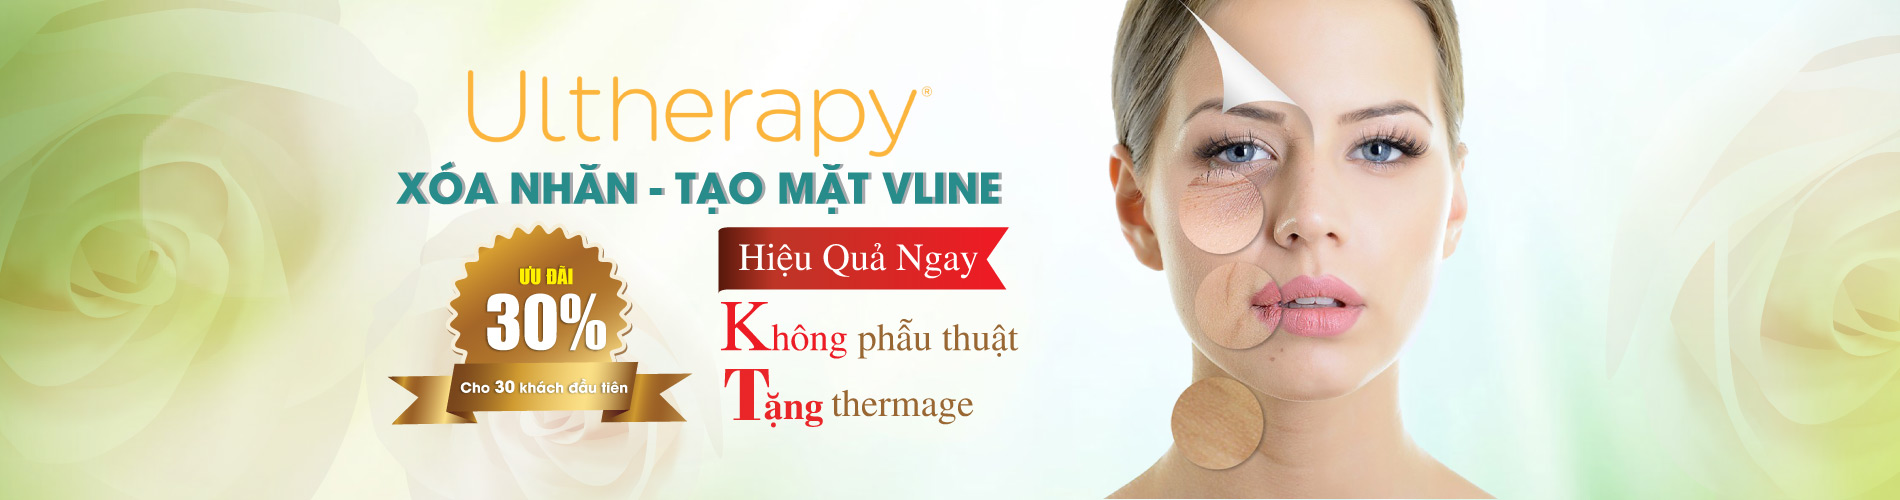 Banner Ultherapy